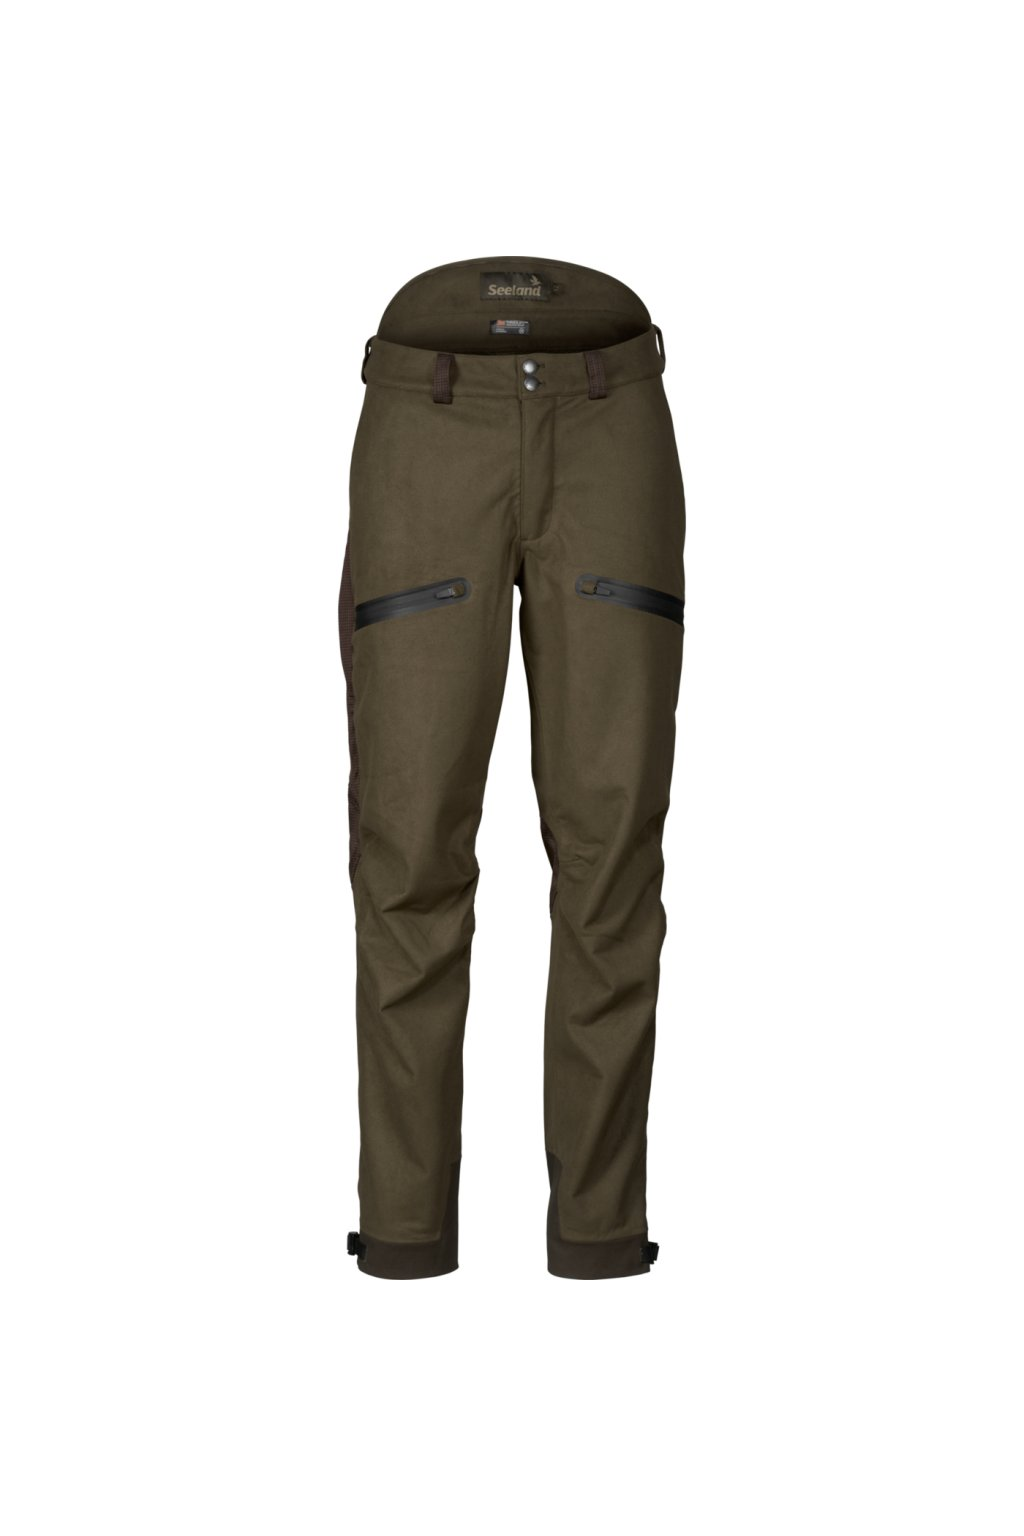 Seeland - Climate hybrid trousers